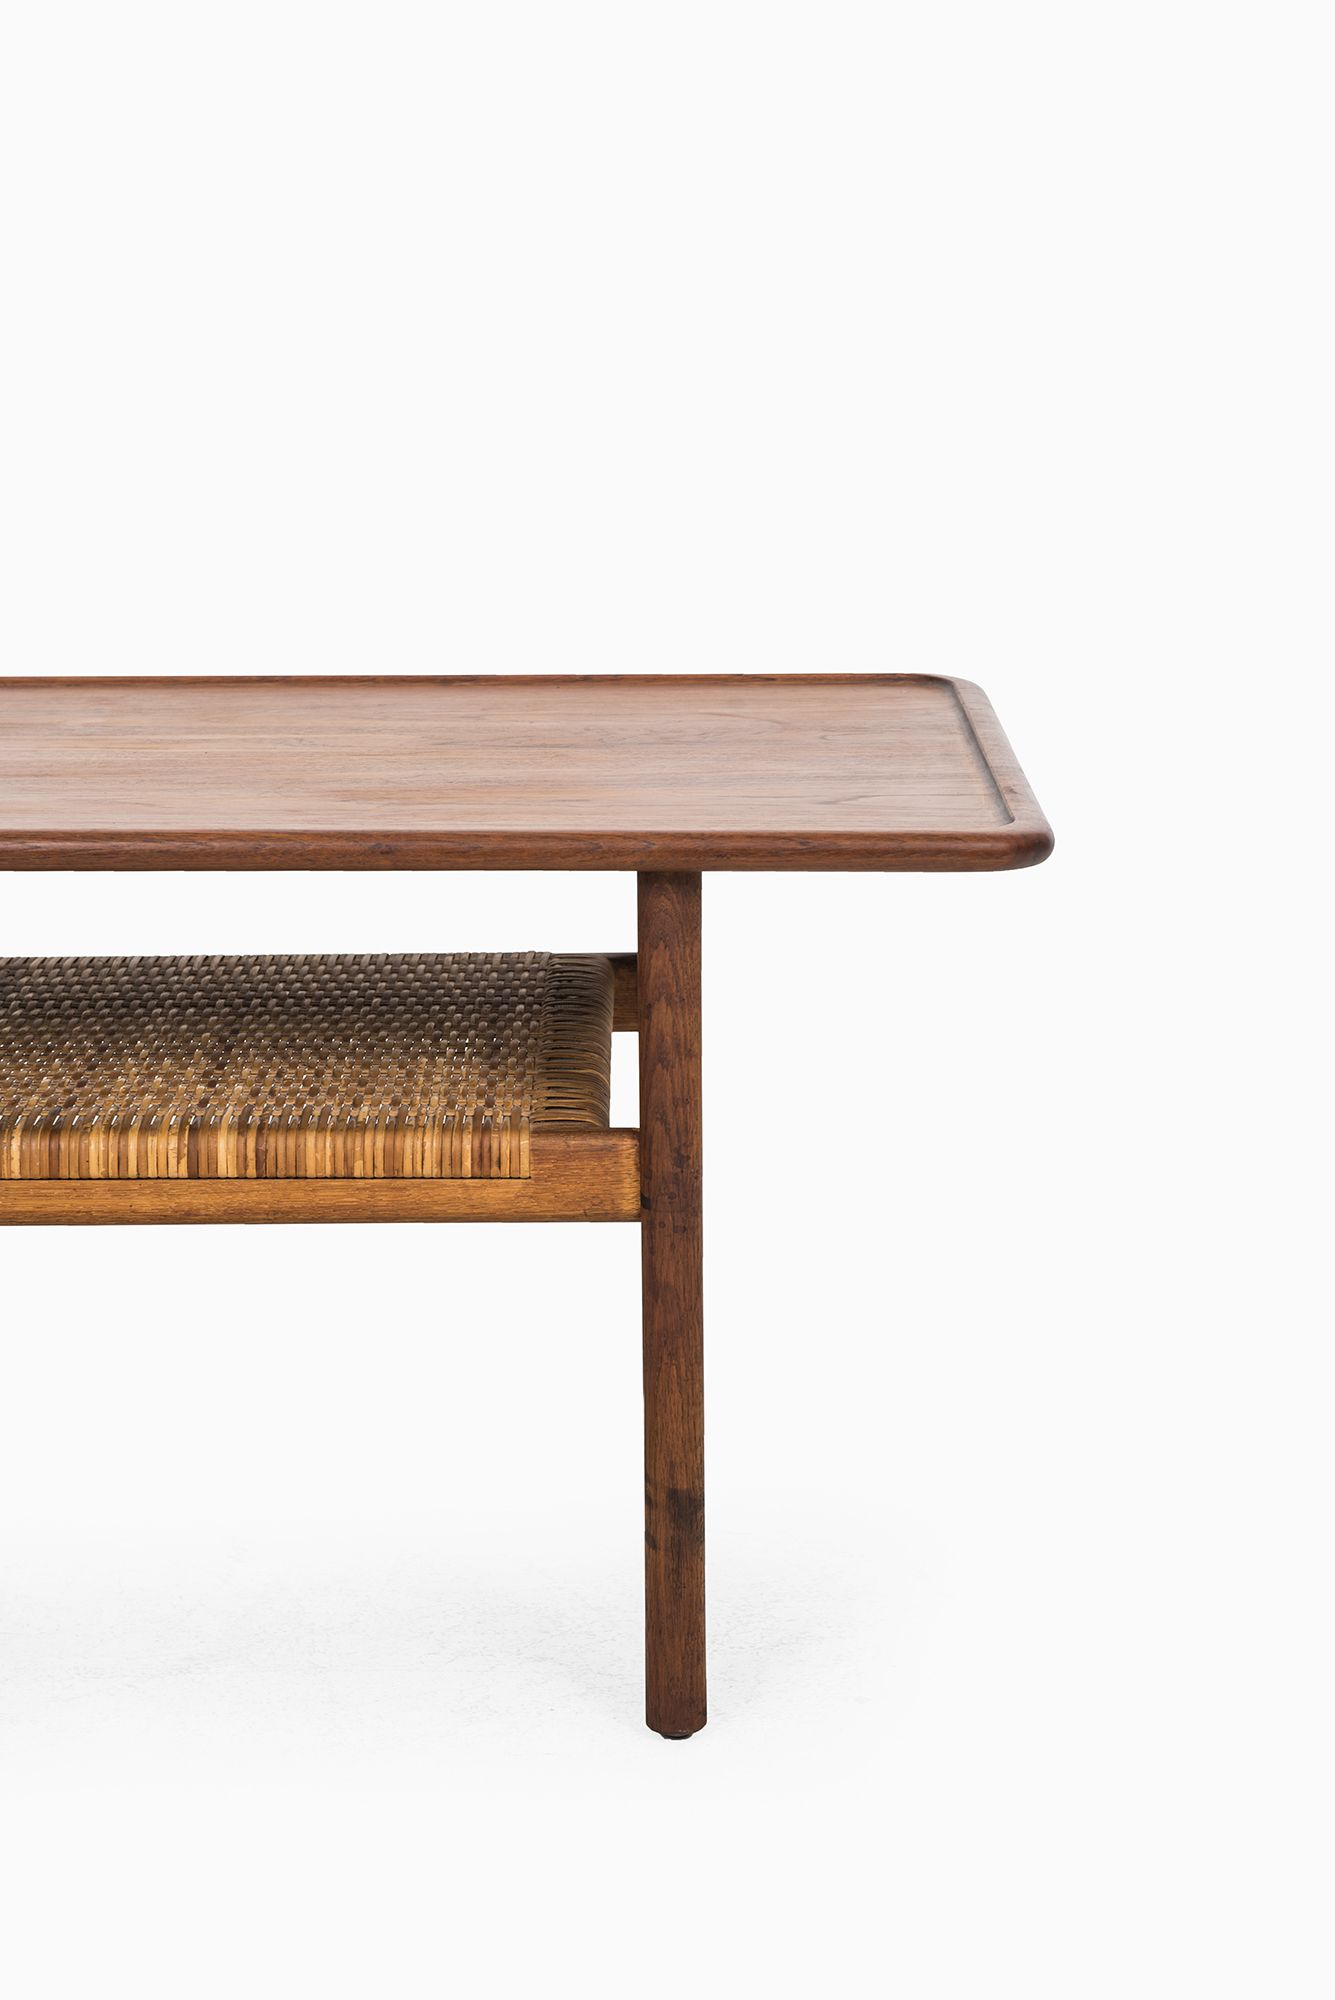 Hans Wegner At 10 Coffee Table Studio Schalling Hans Wegner Coffee Table Coffee Table Wegner